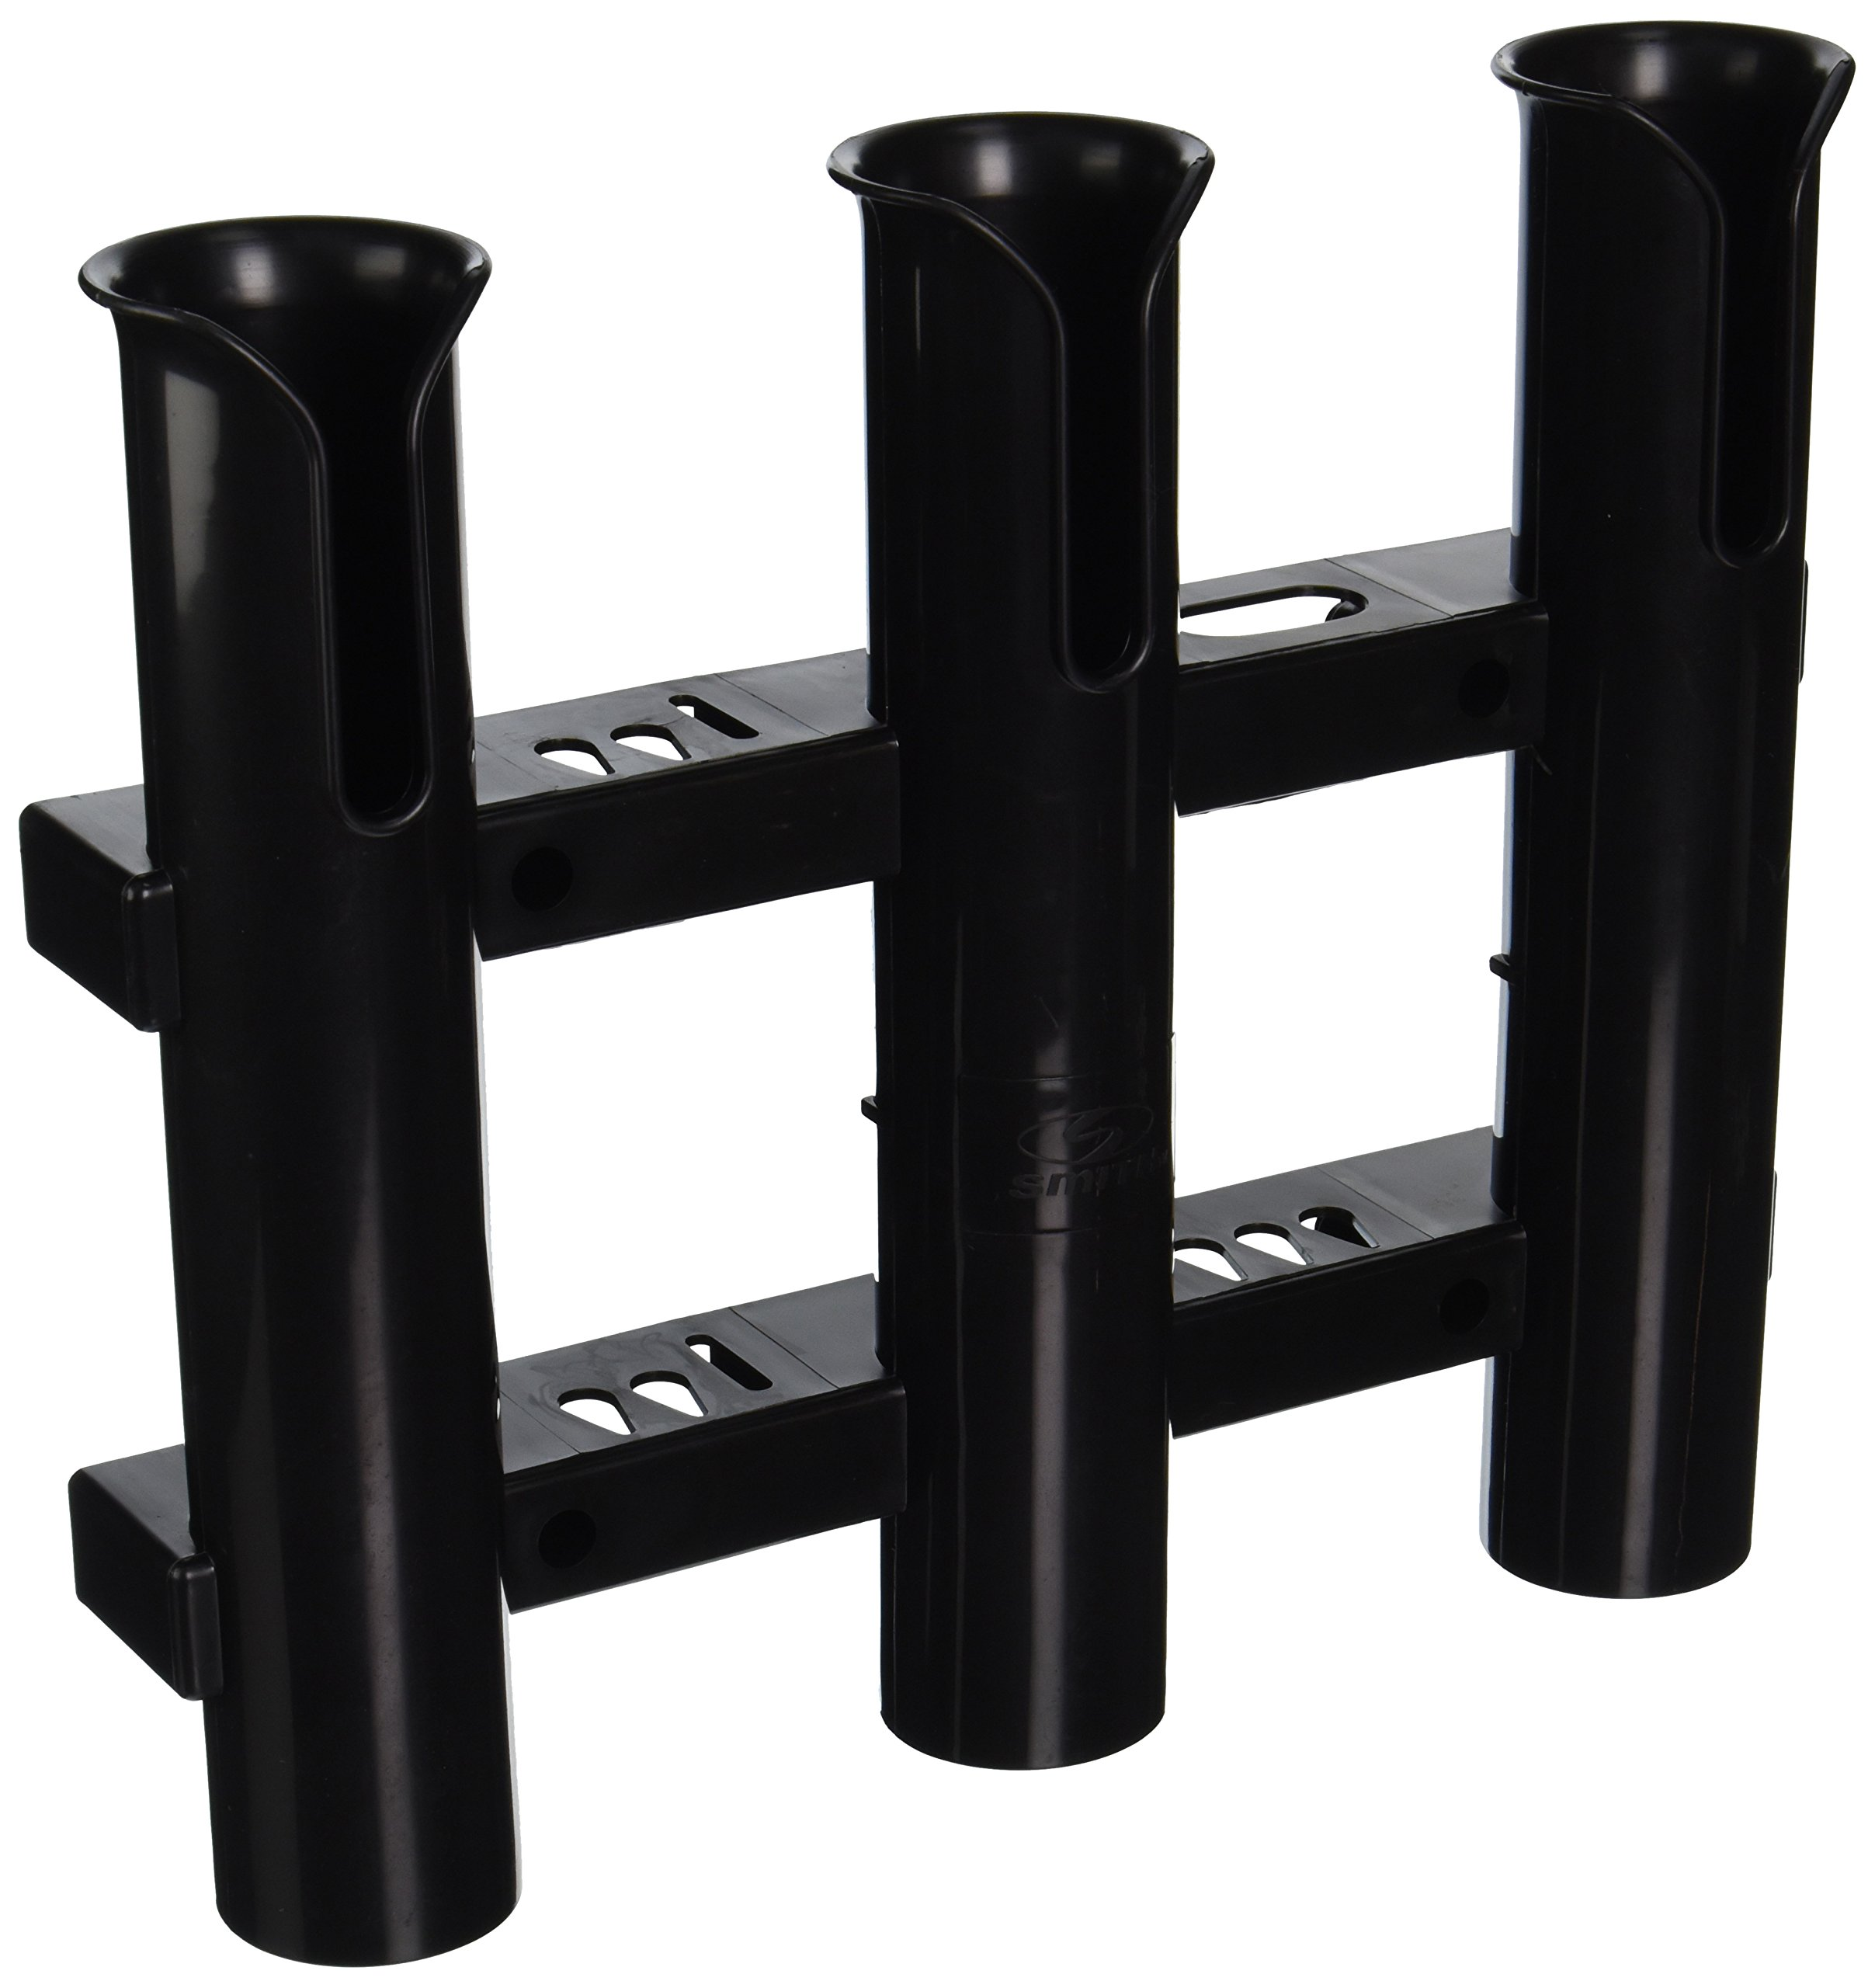 CE SMITH TOURNAMENT 3 ROD RACK BLACK